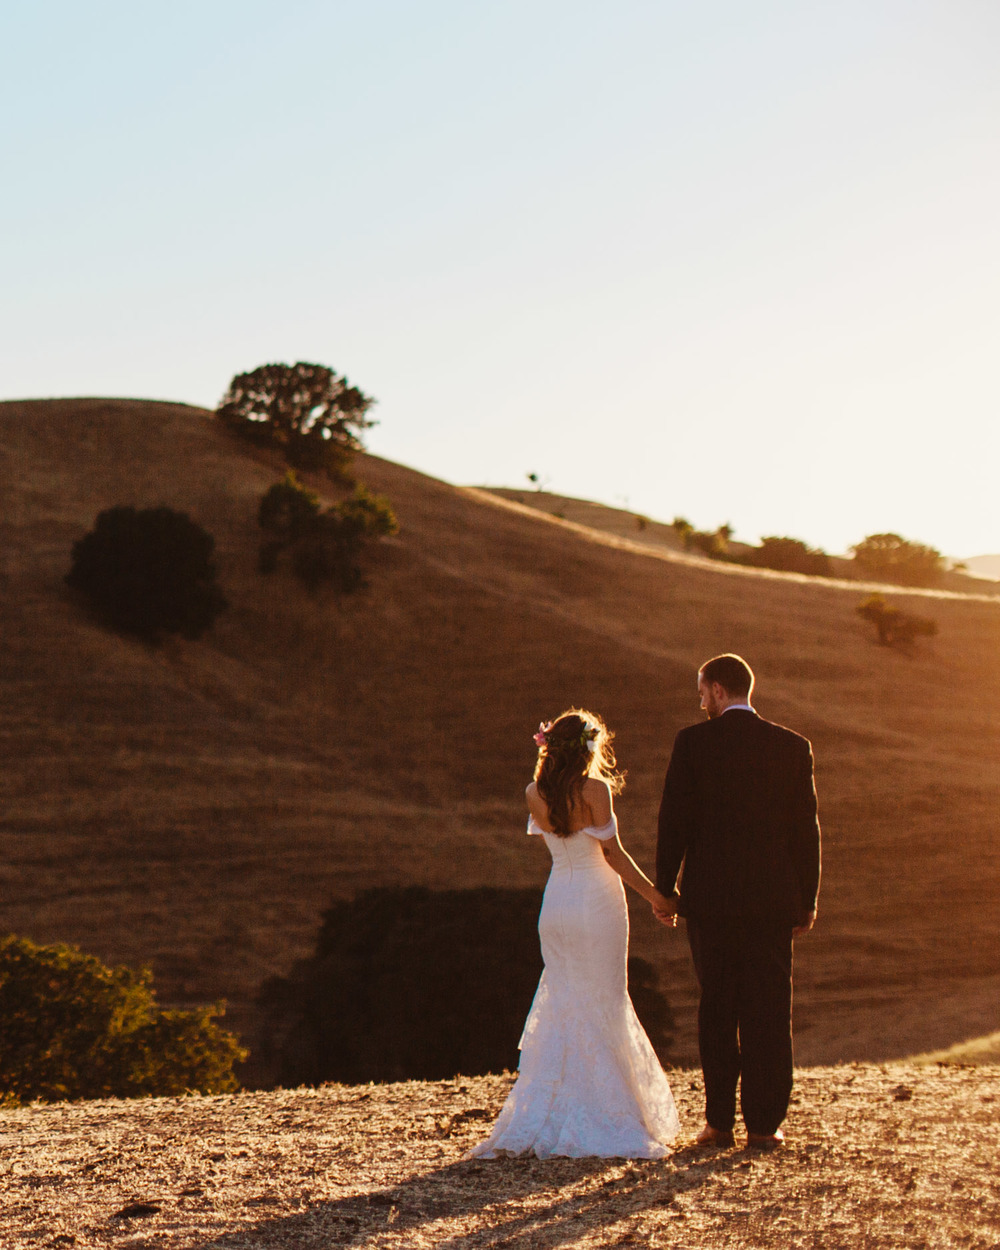 Napa Valley Vacaville Wedding Photographer - Hannah & Stephen - The Gathering Season x weareleoandkat 066.jpg